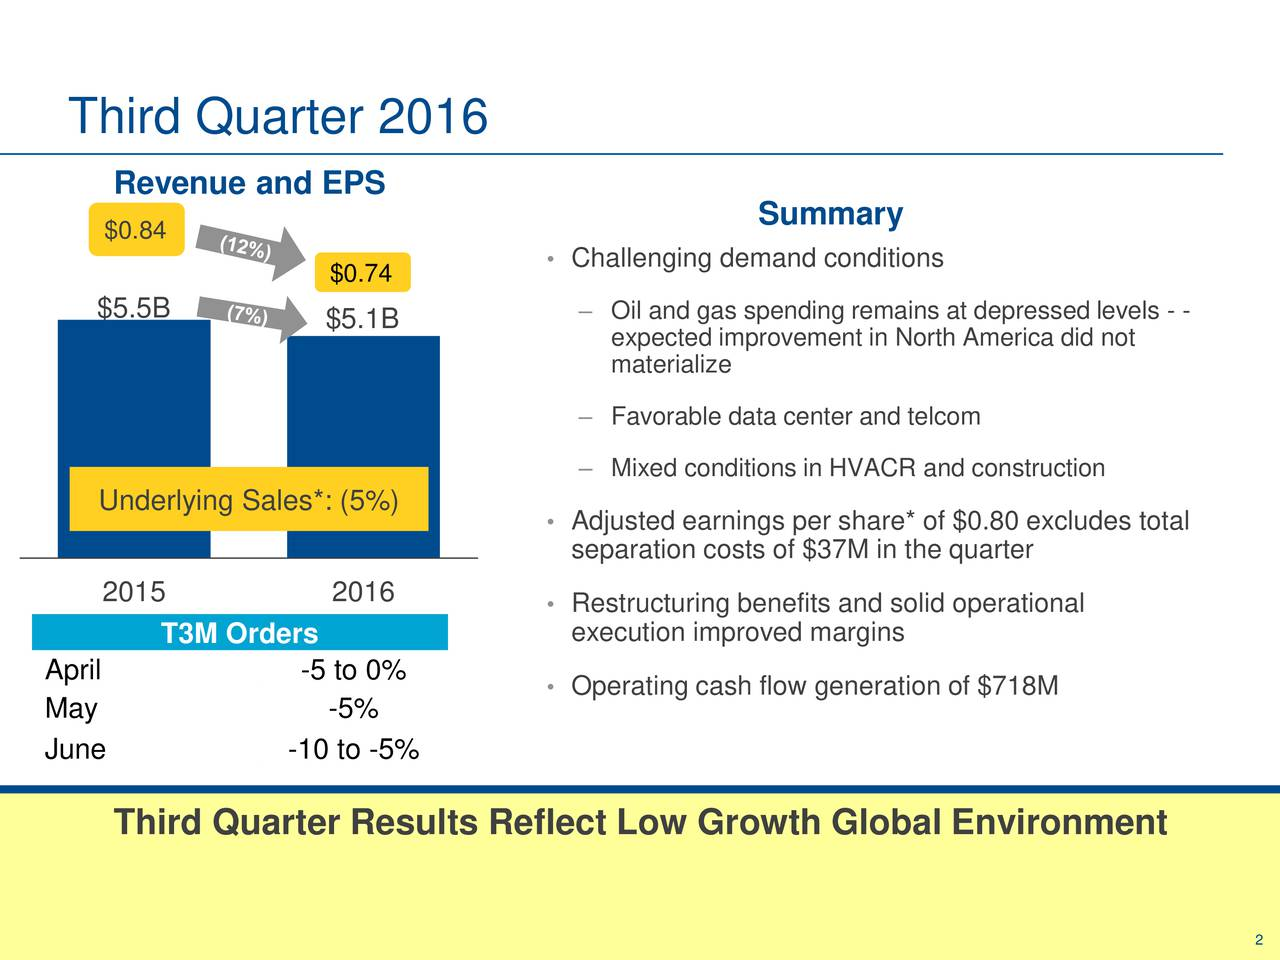 Revenue and EPS Summary $0.84 Challenging demand conditions $0.74 $5.5B $5.1B  Oil and gas spending remains at depressed levels - - expected improvement in North America did not materialize Favorable data center and telcom Mixed conditions in HVACR and construction Underlying Sales*: (5%) Adjusted earnings per share* of $0.80 excludes total separation costs of $37M in the quarter 2015 2016  Restructuring benefits and solid operational T3M Orders execution improved margins April -5 to 0% Operating cash flow generation of $718M May -5% June -10 to -5% Third Quarter Results Reflect Low Growth Global Environment 2